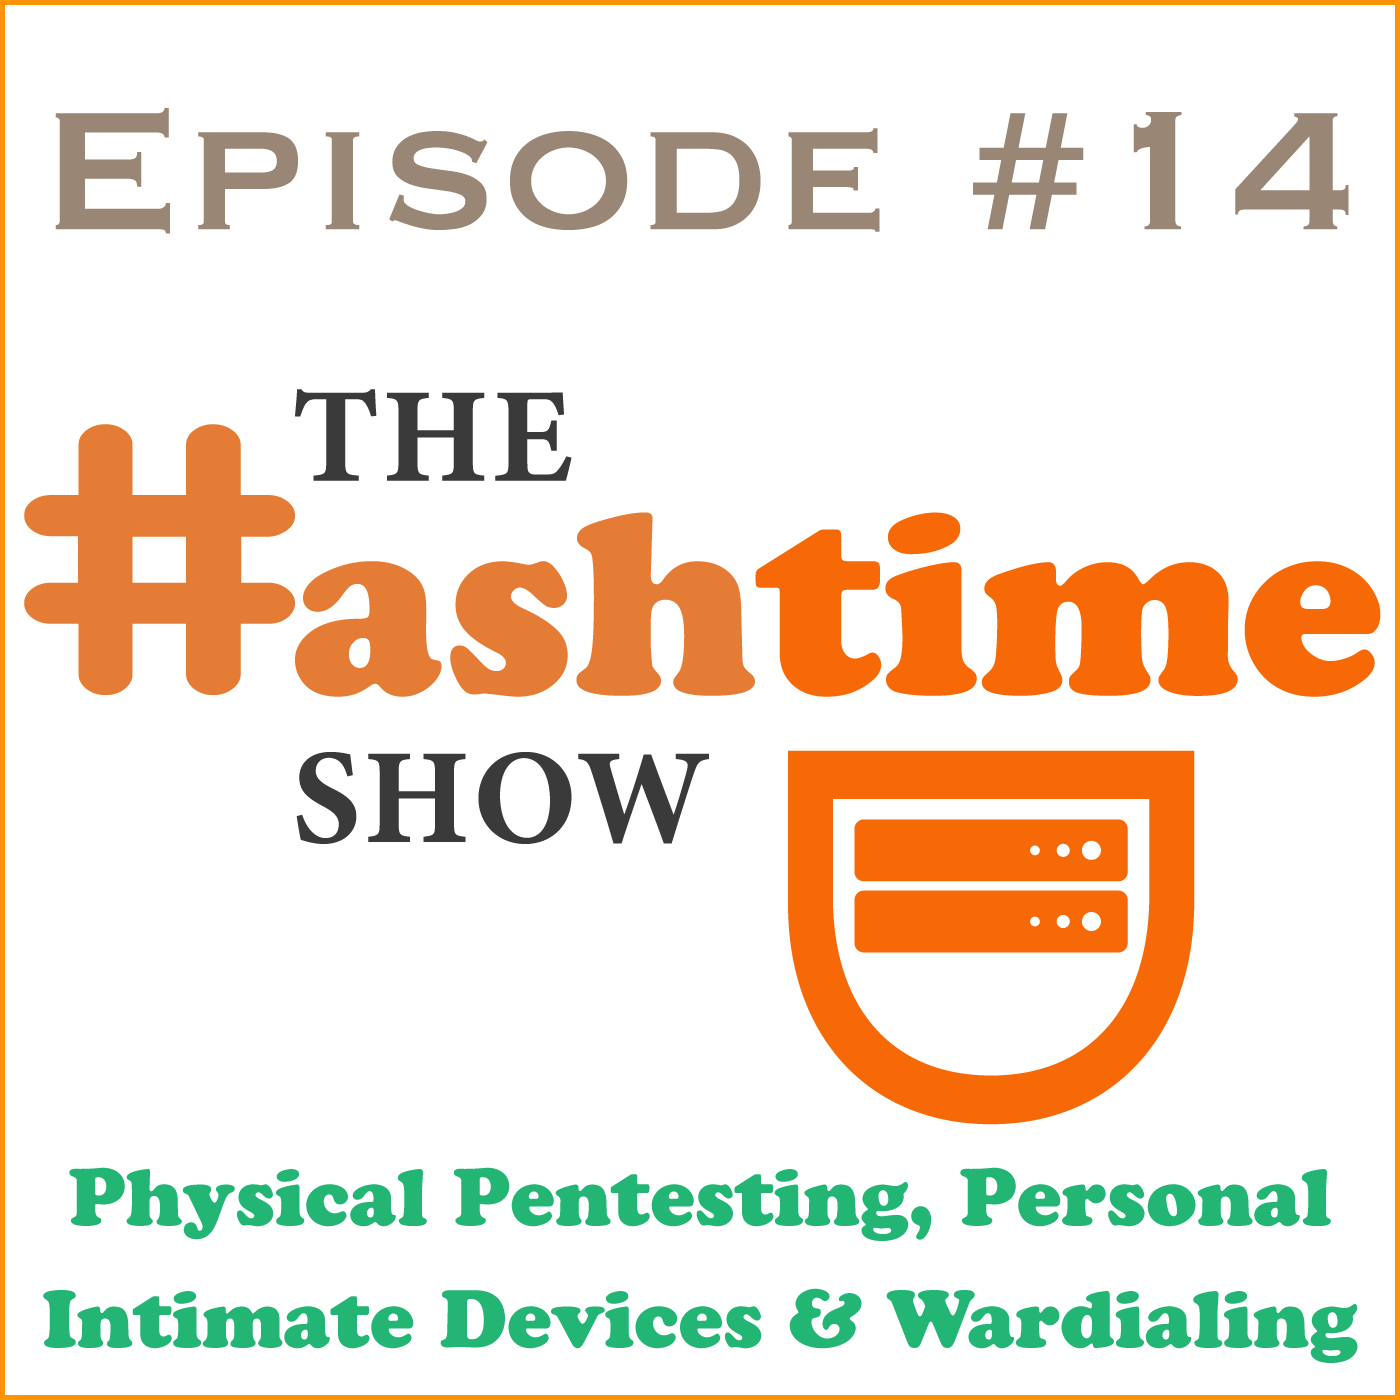 Episode #14 - Physical Pentesting, Personal Intimate Devices & Wardialing